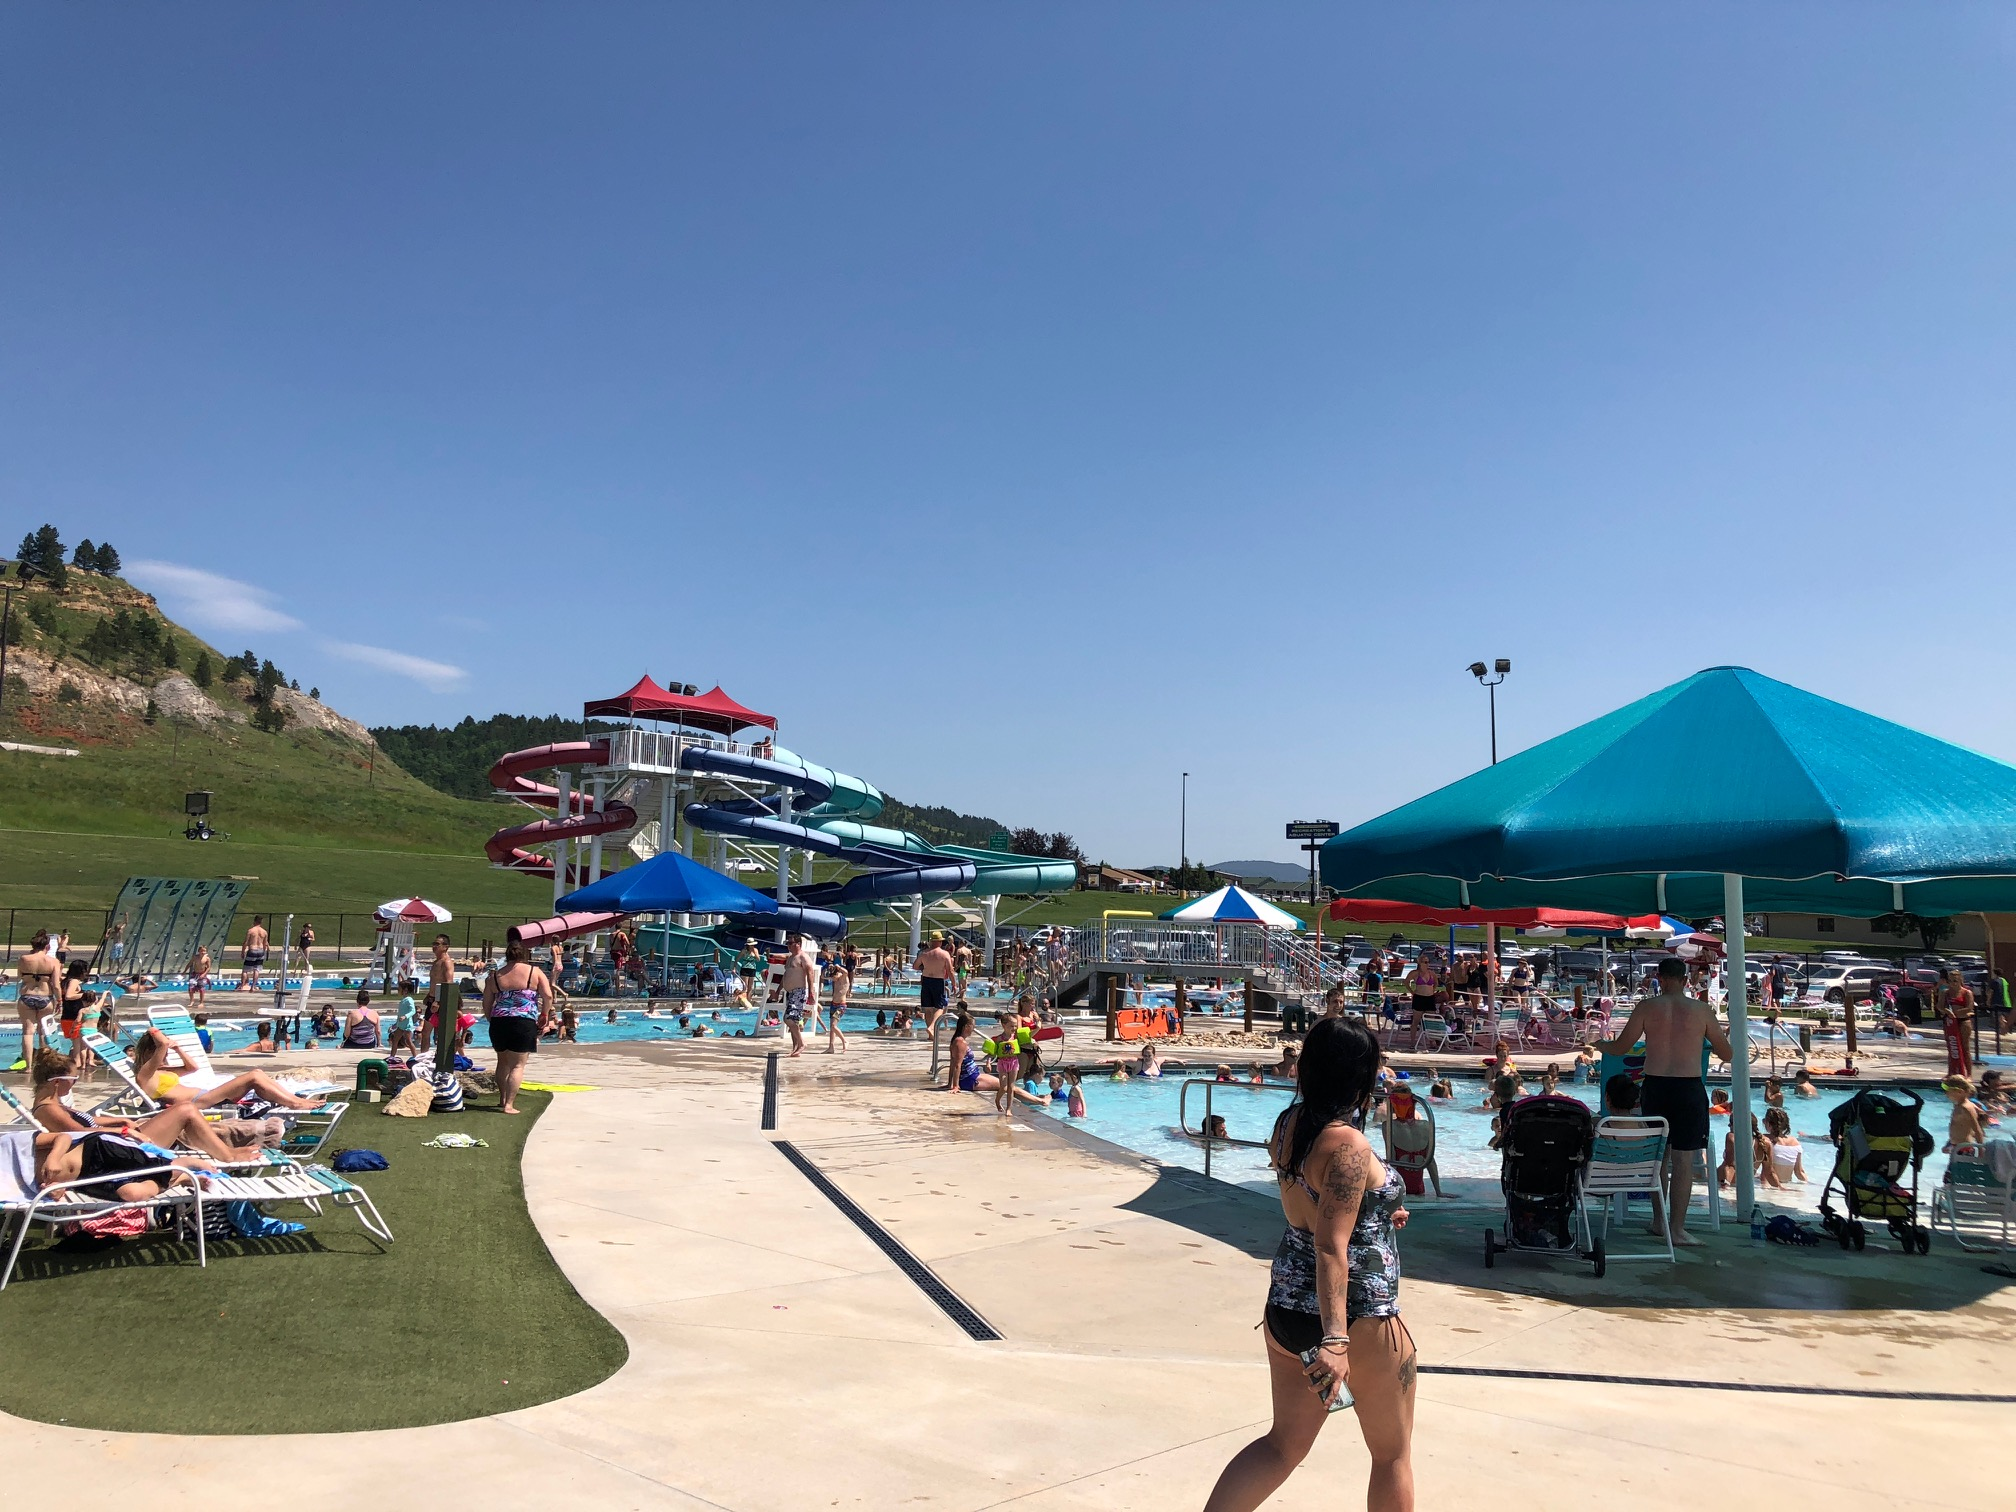 Yes, this is part of the Spearfish Rec Center!!